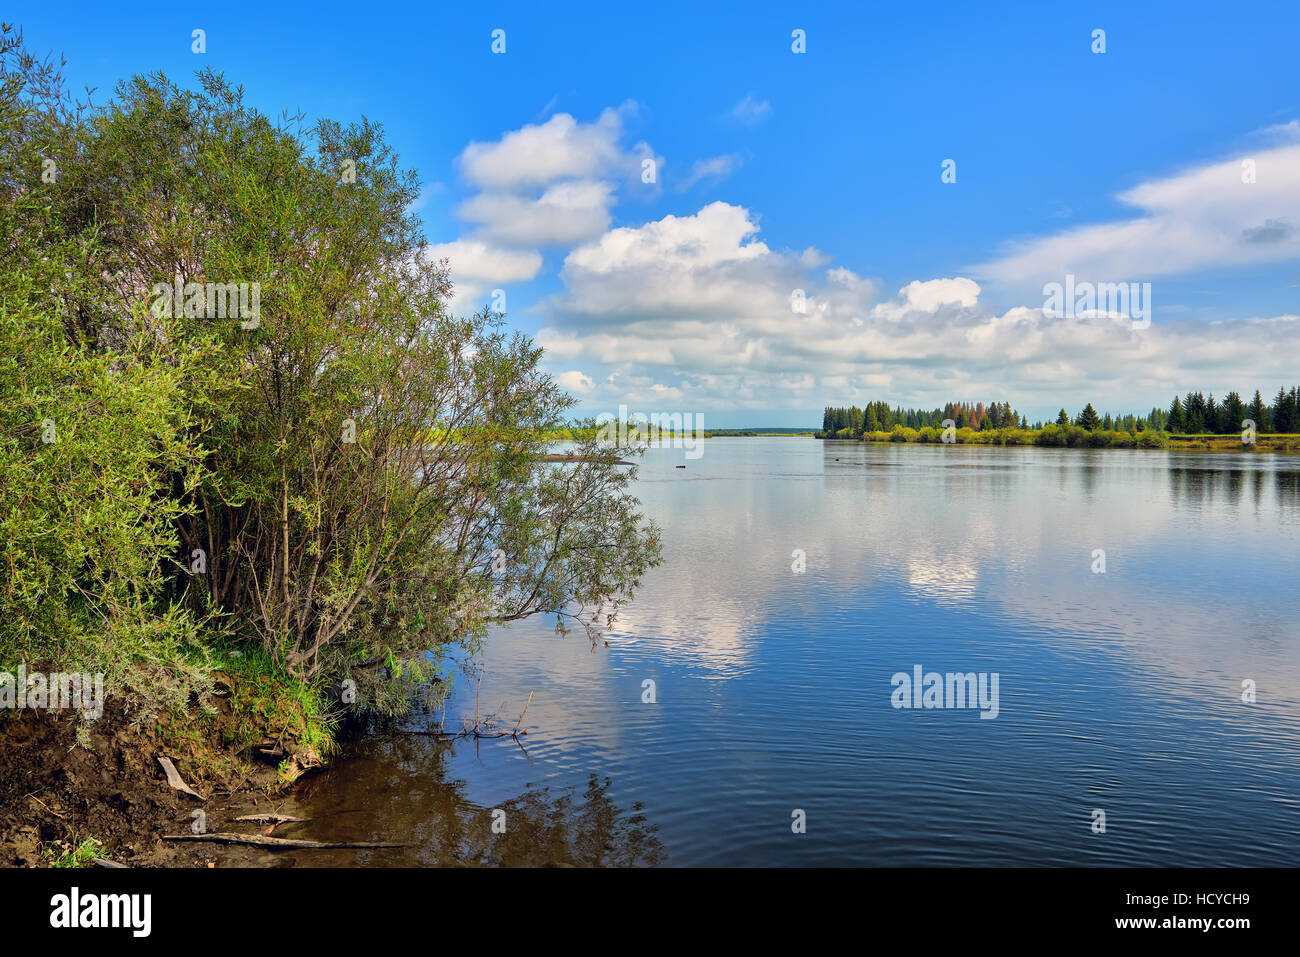 Green willow on bank of Irkut River. Eastern Siberia. Russia - Stock Image